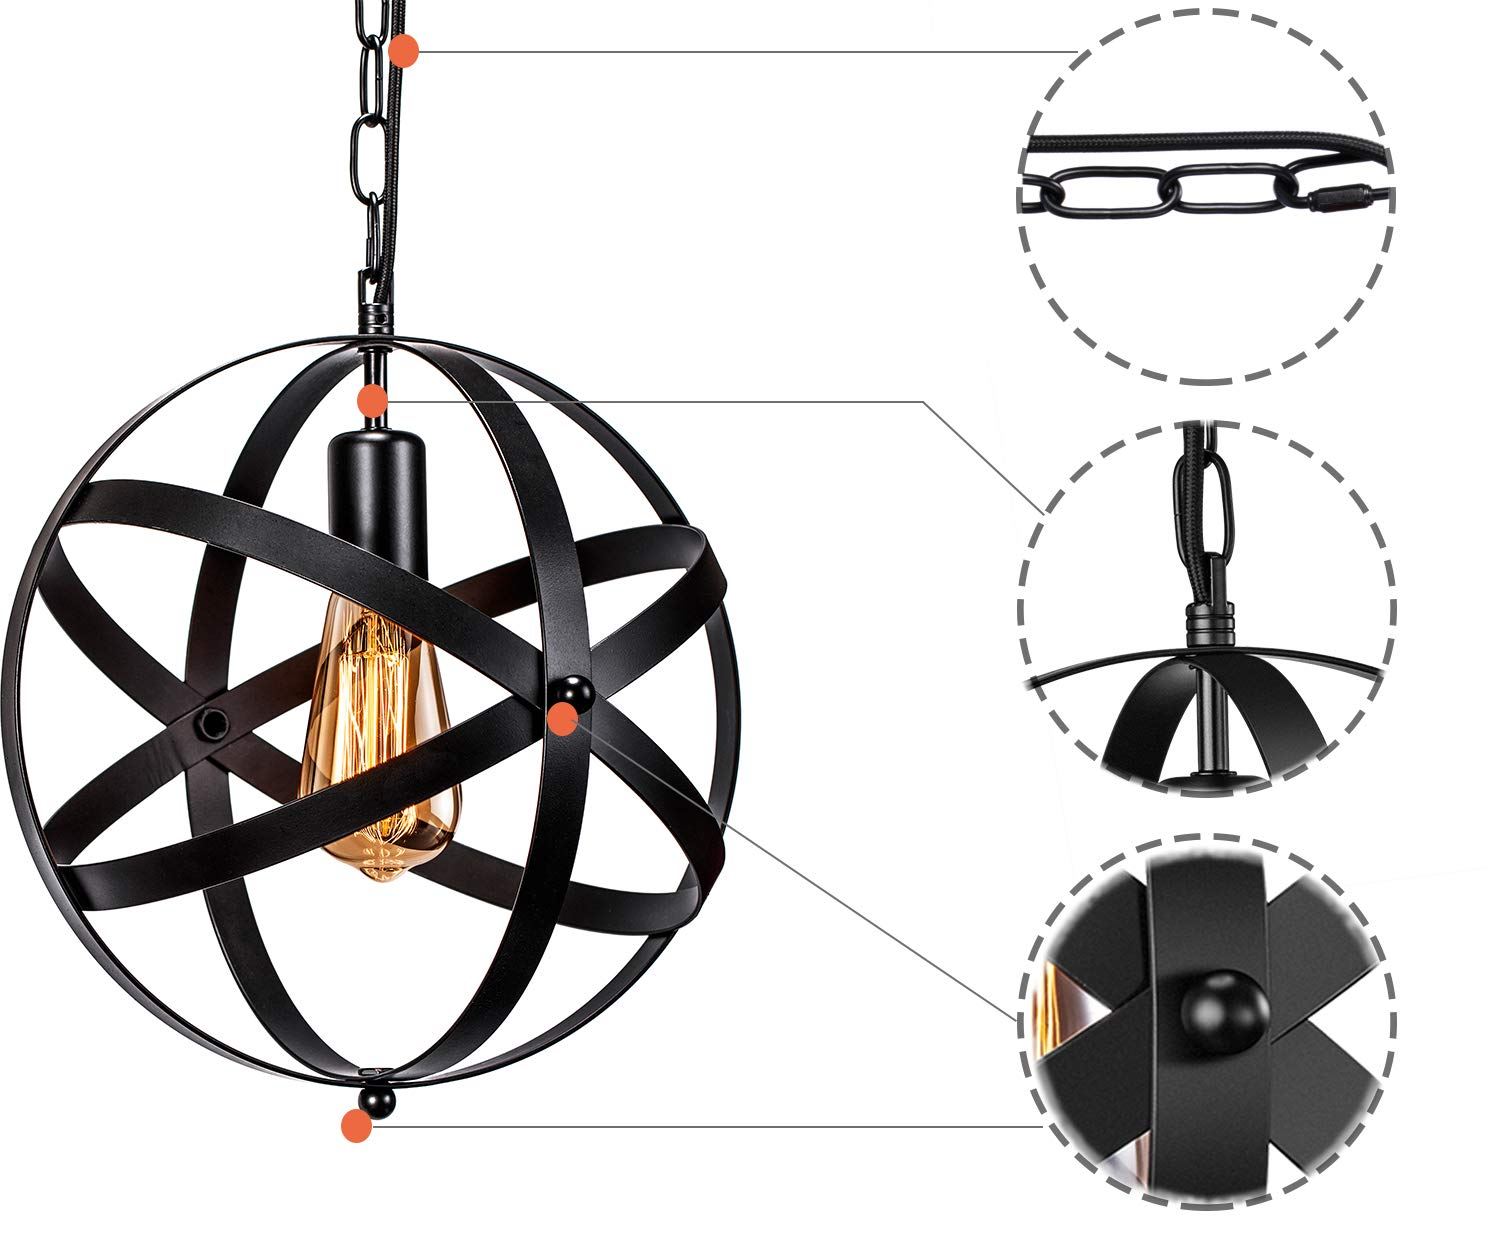 Industrial Plug in Pendant Light INNOCCY E26 E27 Industrial Hanging Light Metal Globe Vintage Pendant Light Fixture with 14.8Ft Hanging Cord and ON/OFF Switch 2 Pack by INNOCCY (Image #2)